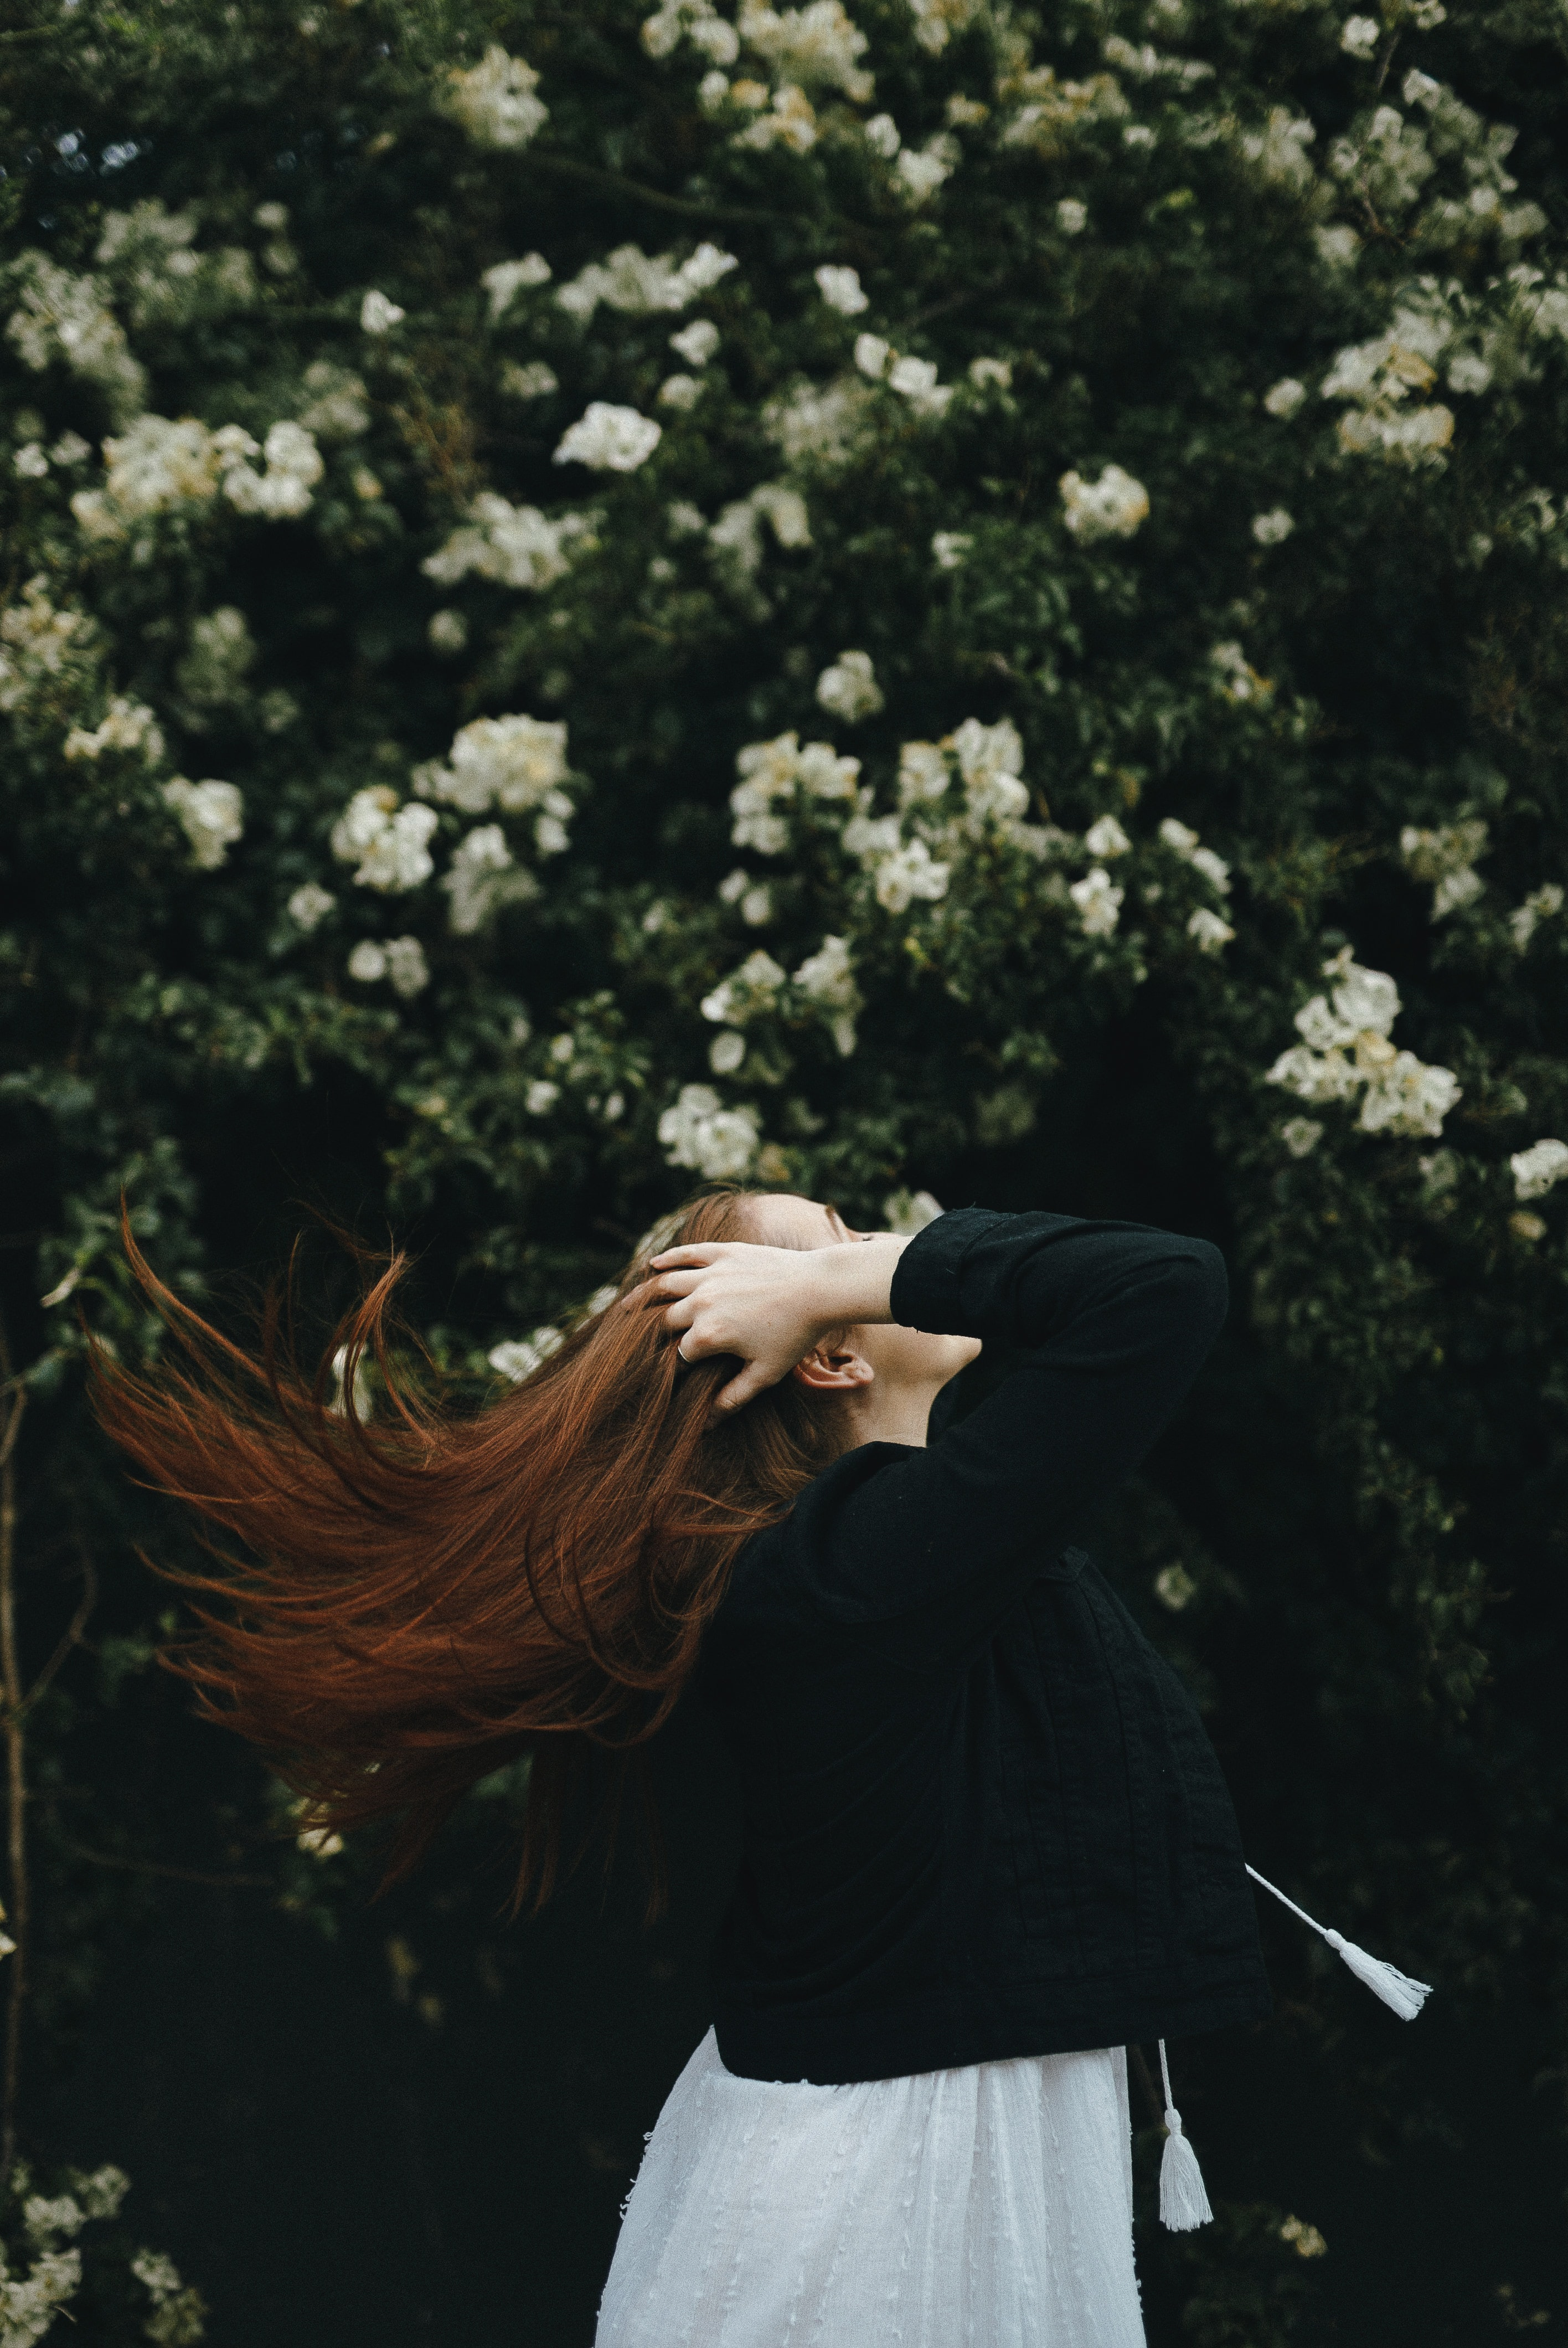 woman holding her hair near bougainvillea plant